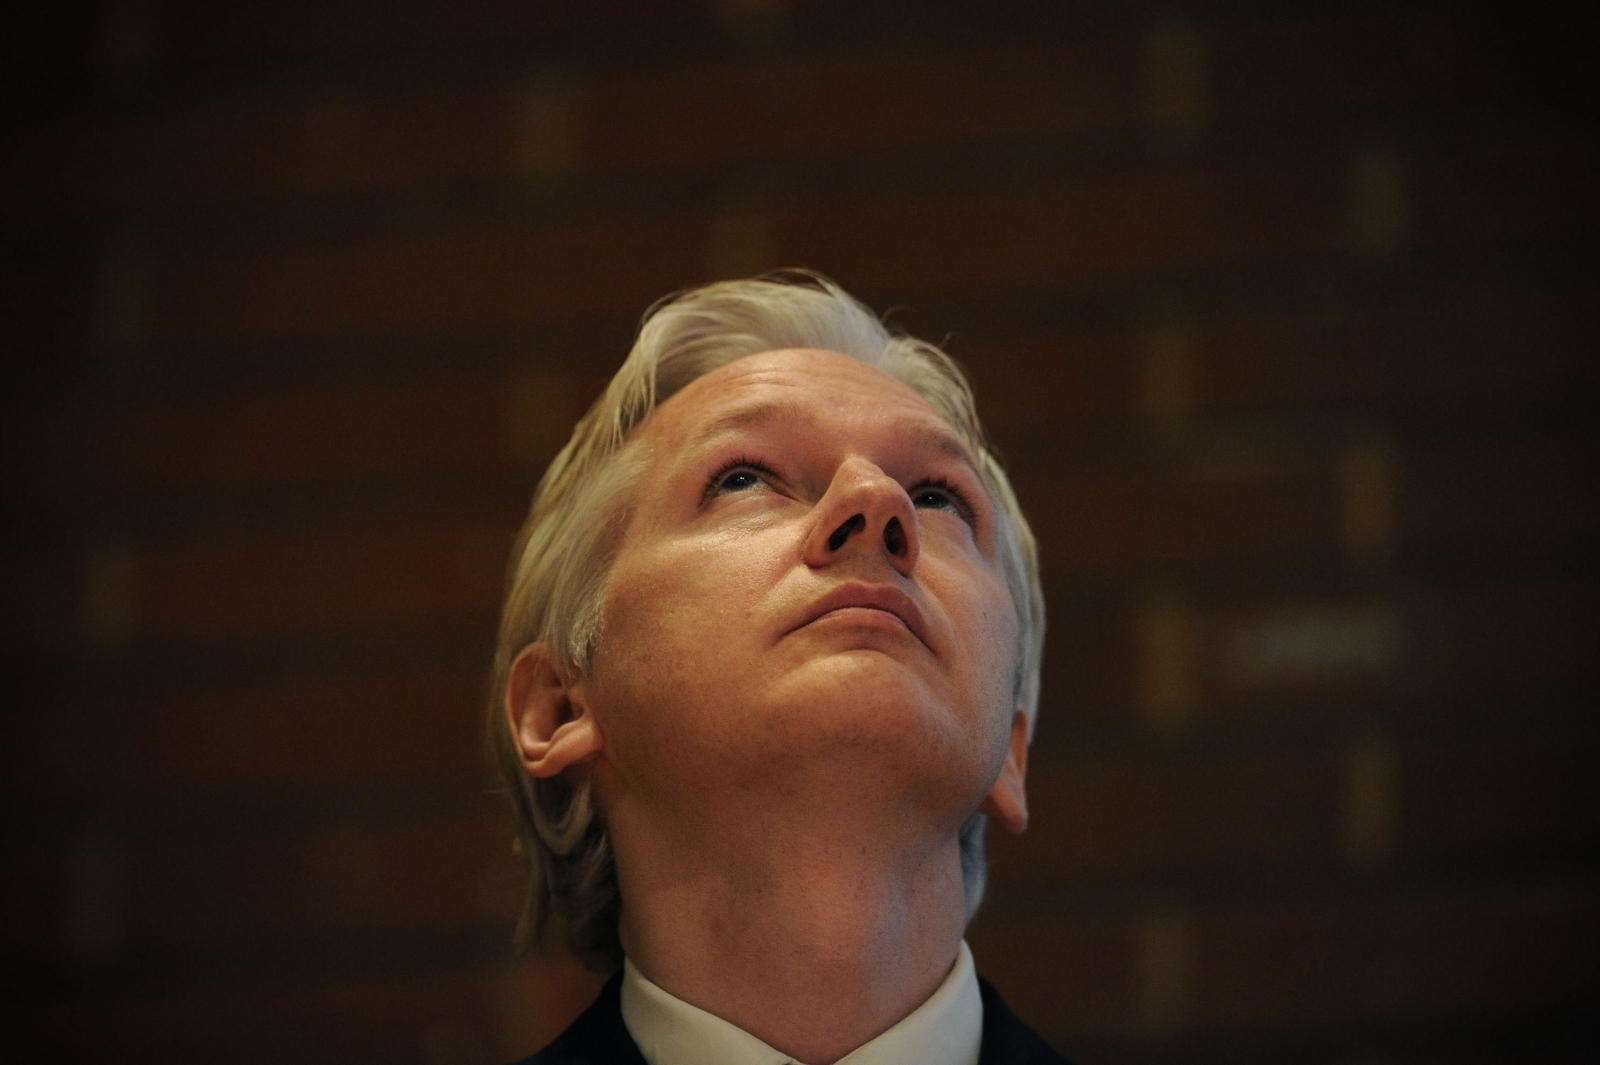 Julian Assange diplomatic status bid rejected by UK